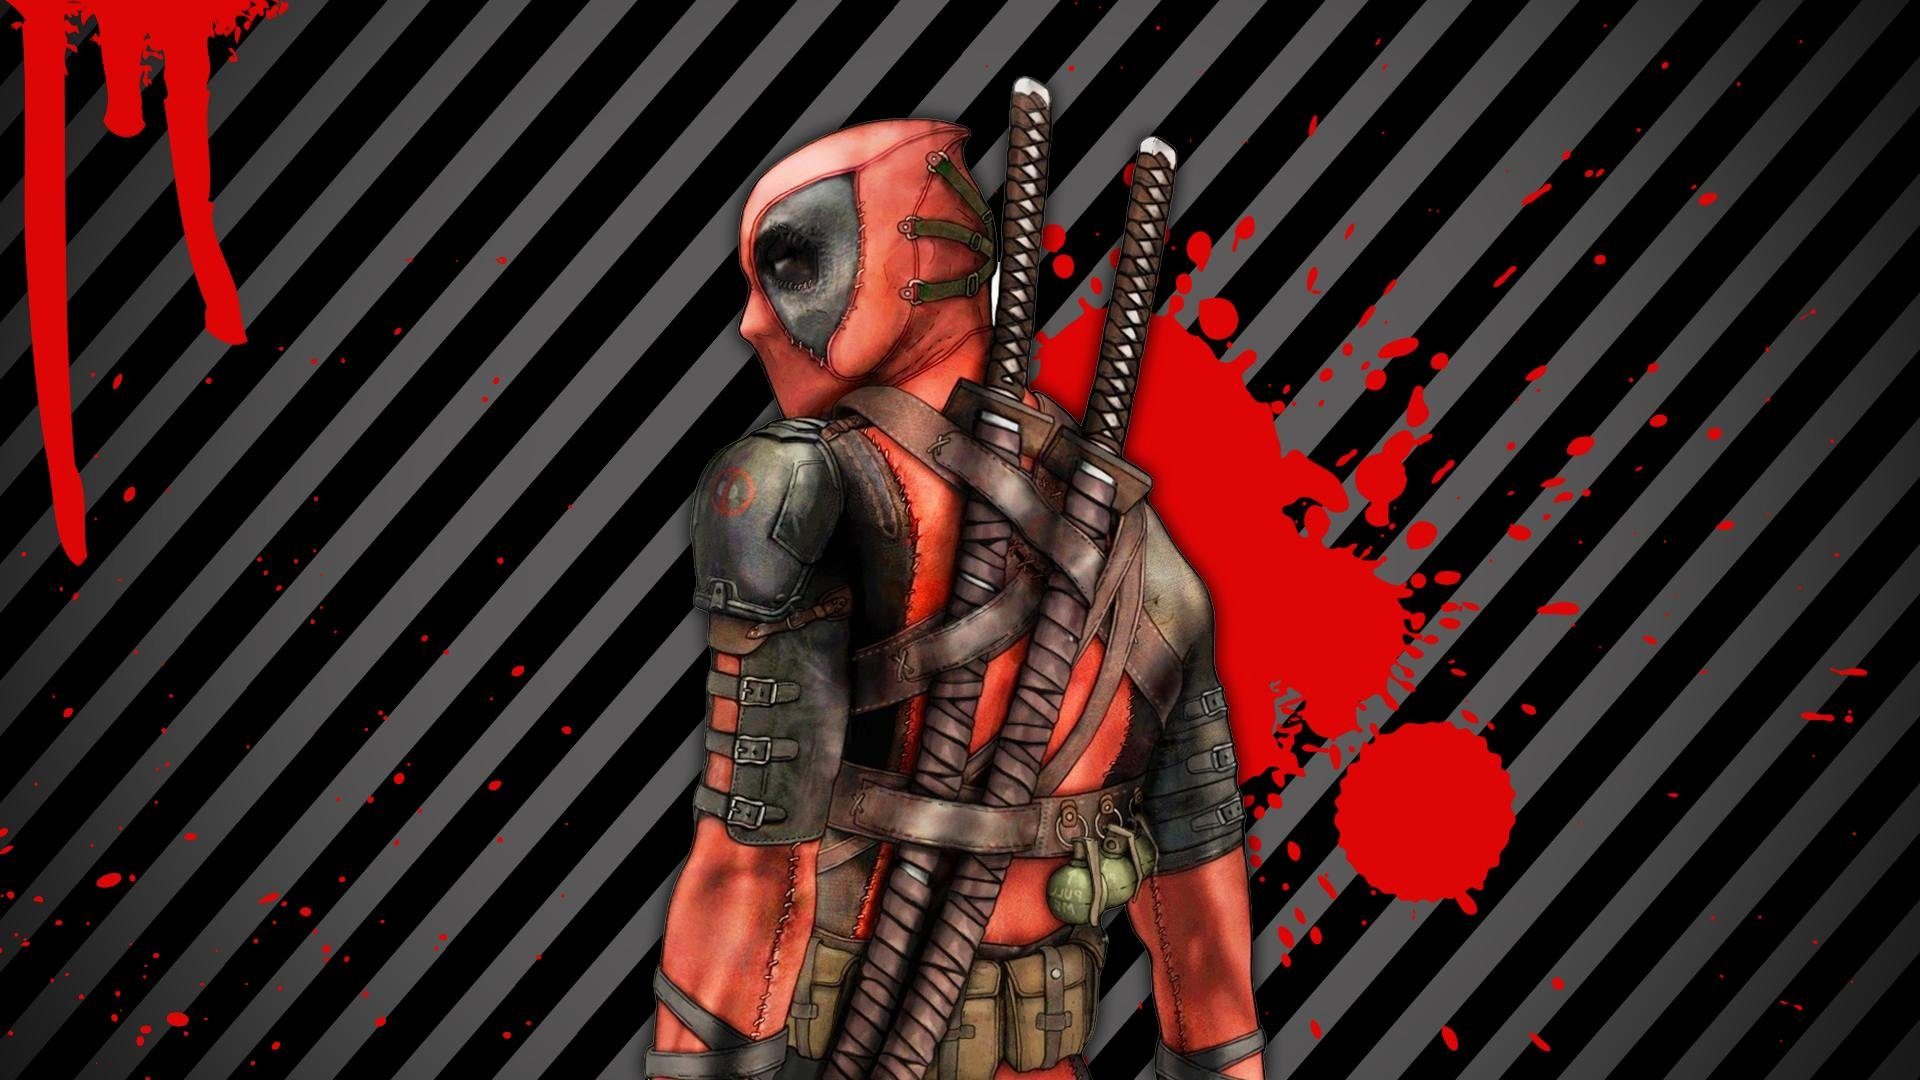 2560x1024 Hd Wallpaper Deadpool Wallpaper 1920x1080 281017 Wallpaperup